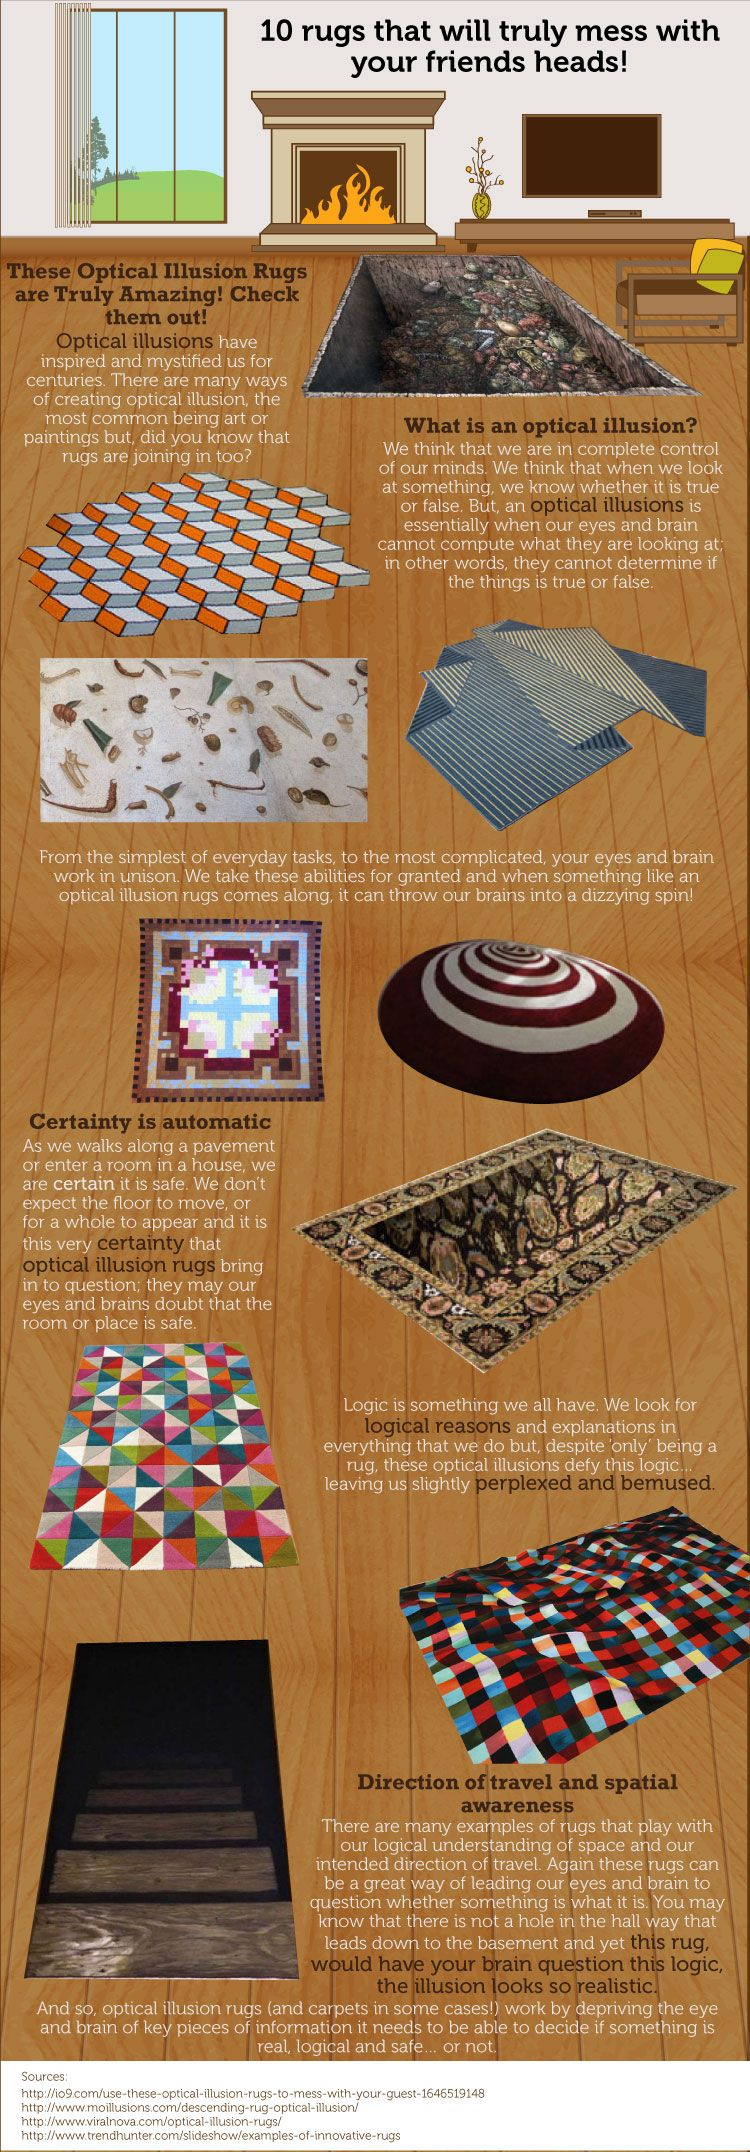 10 Rugs That Will Truly Mess With Your Friends Heads #infographic